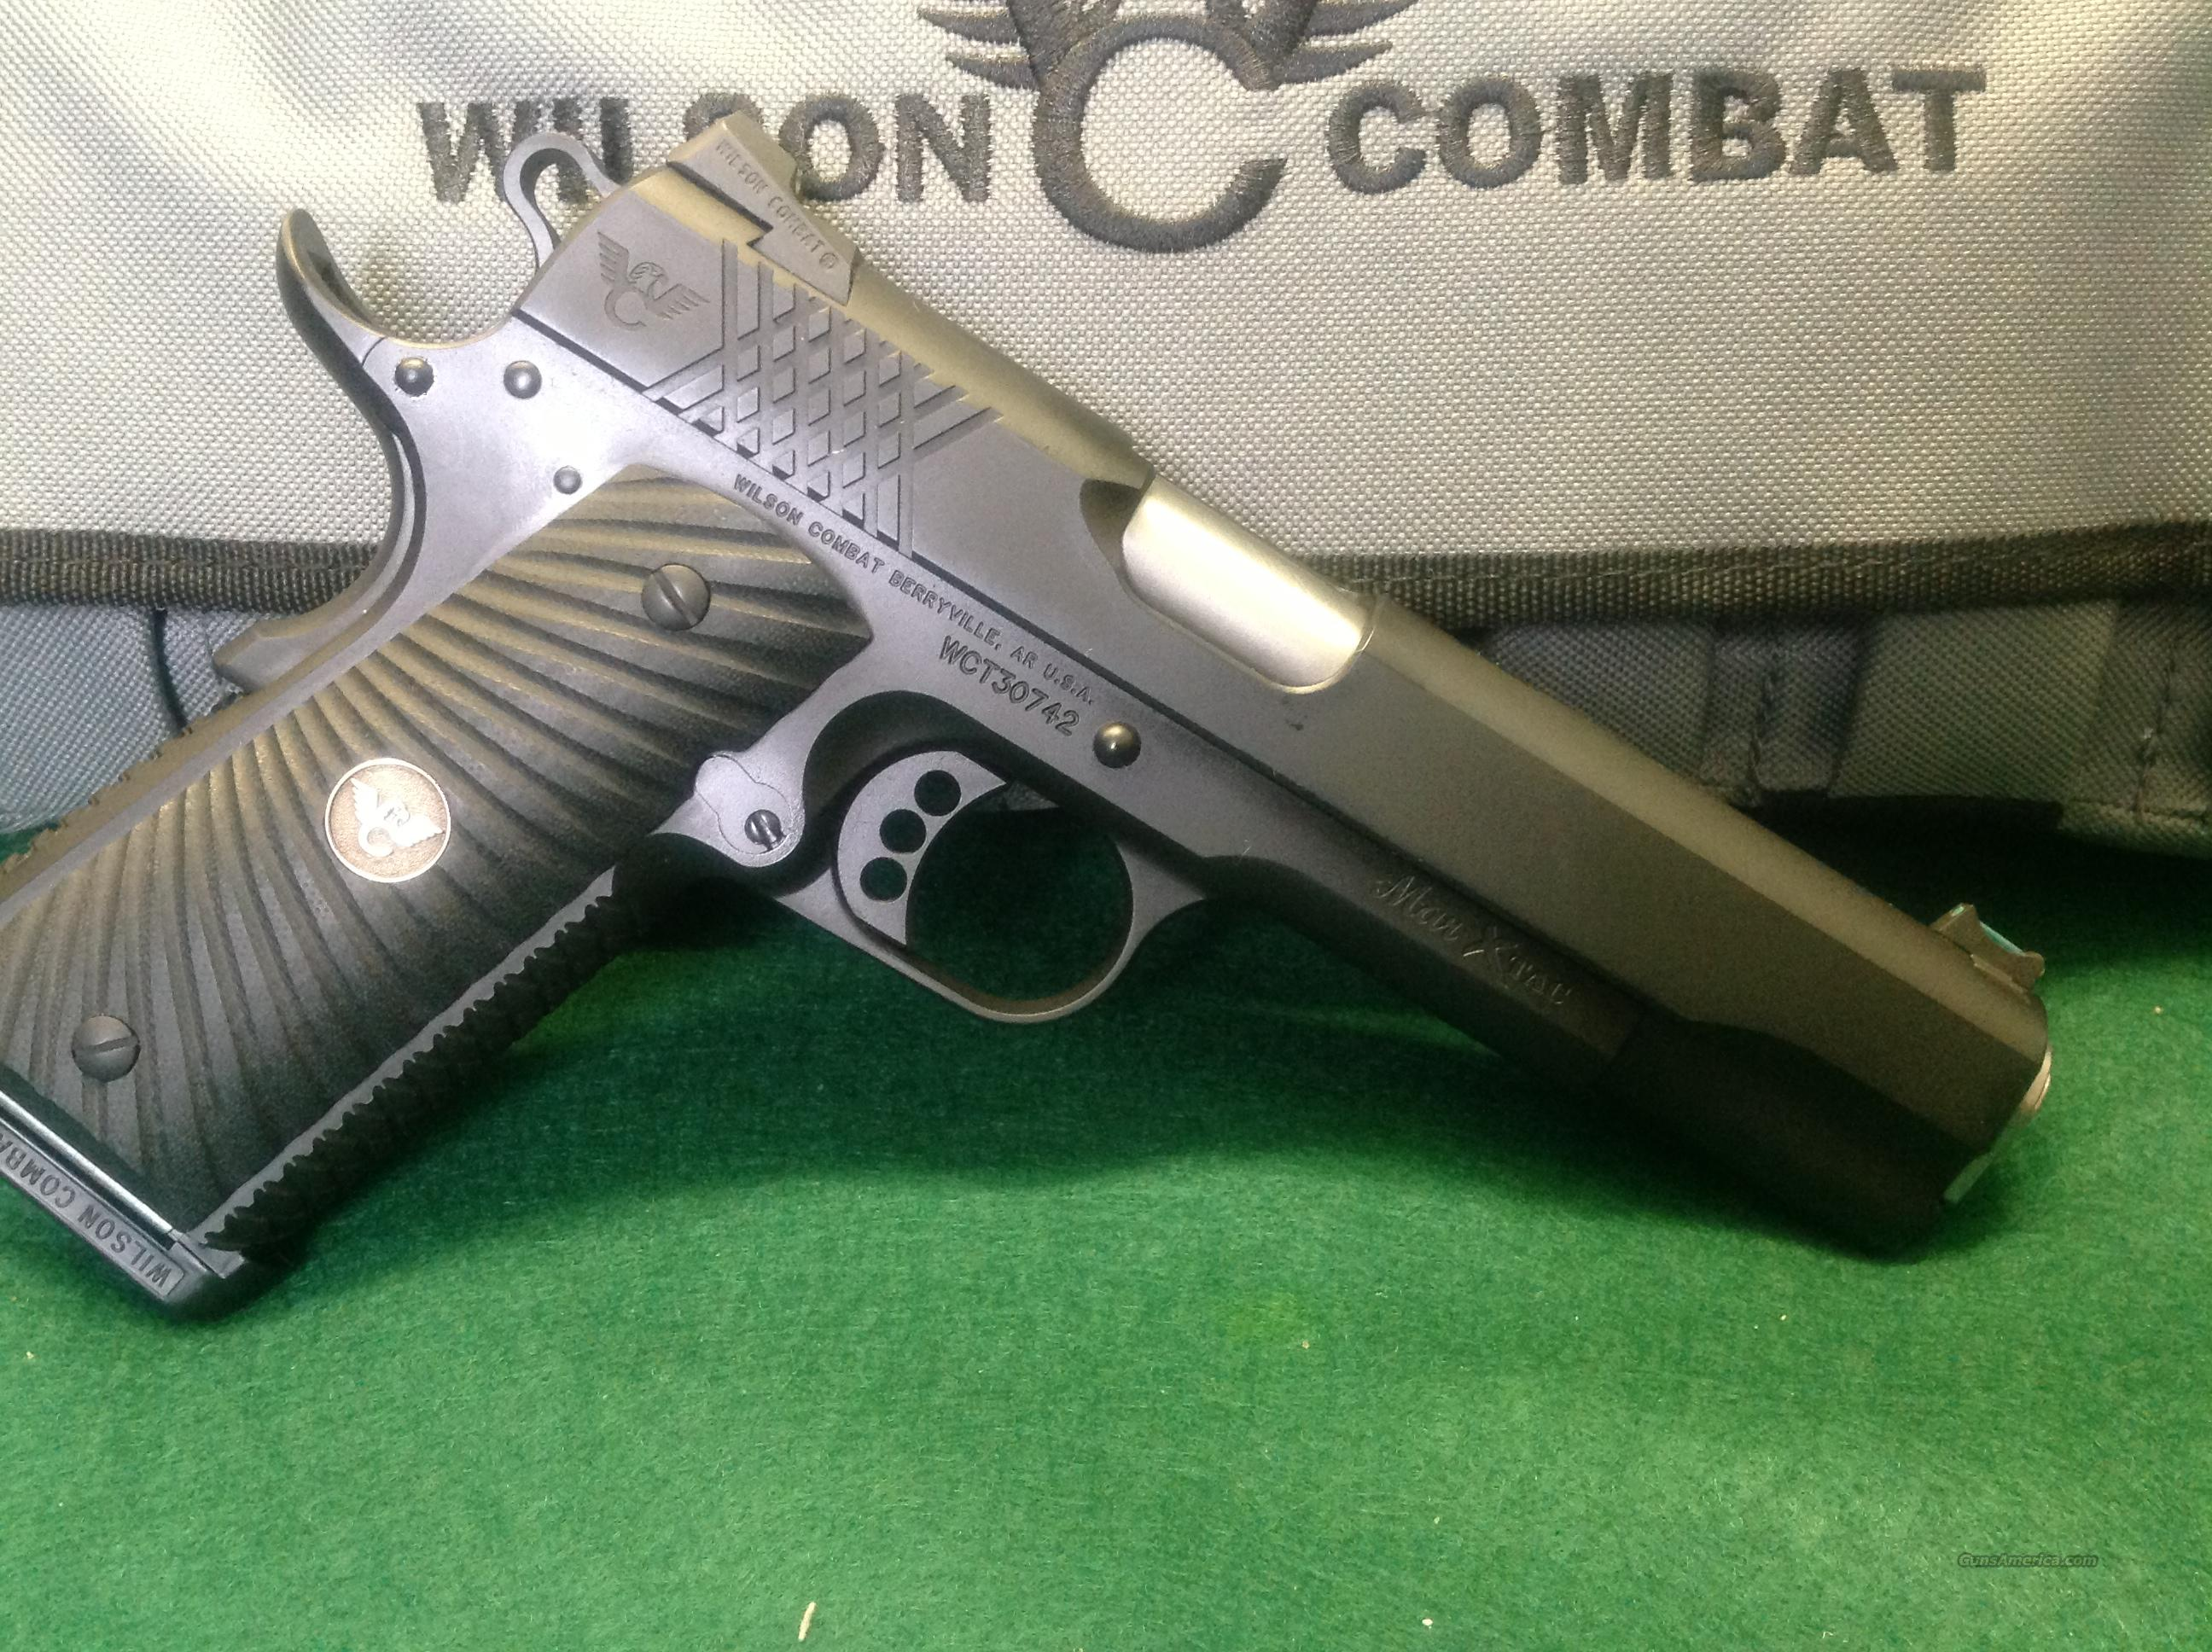 Wilson Combat Xtac No Slide Markings  Guns > Pistols > Wilson Combat Pistols